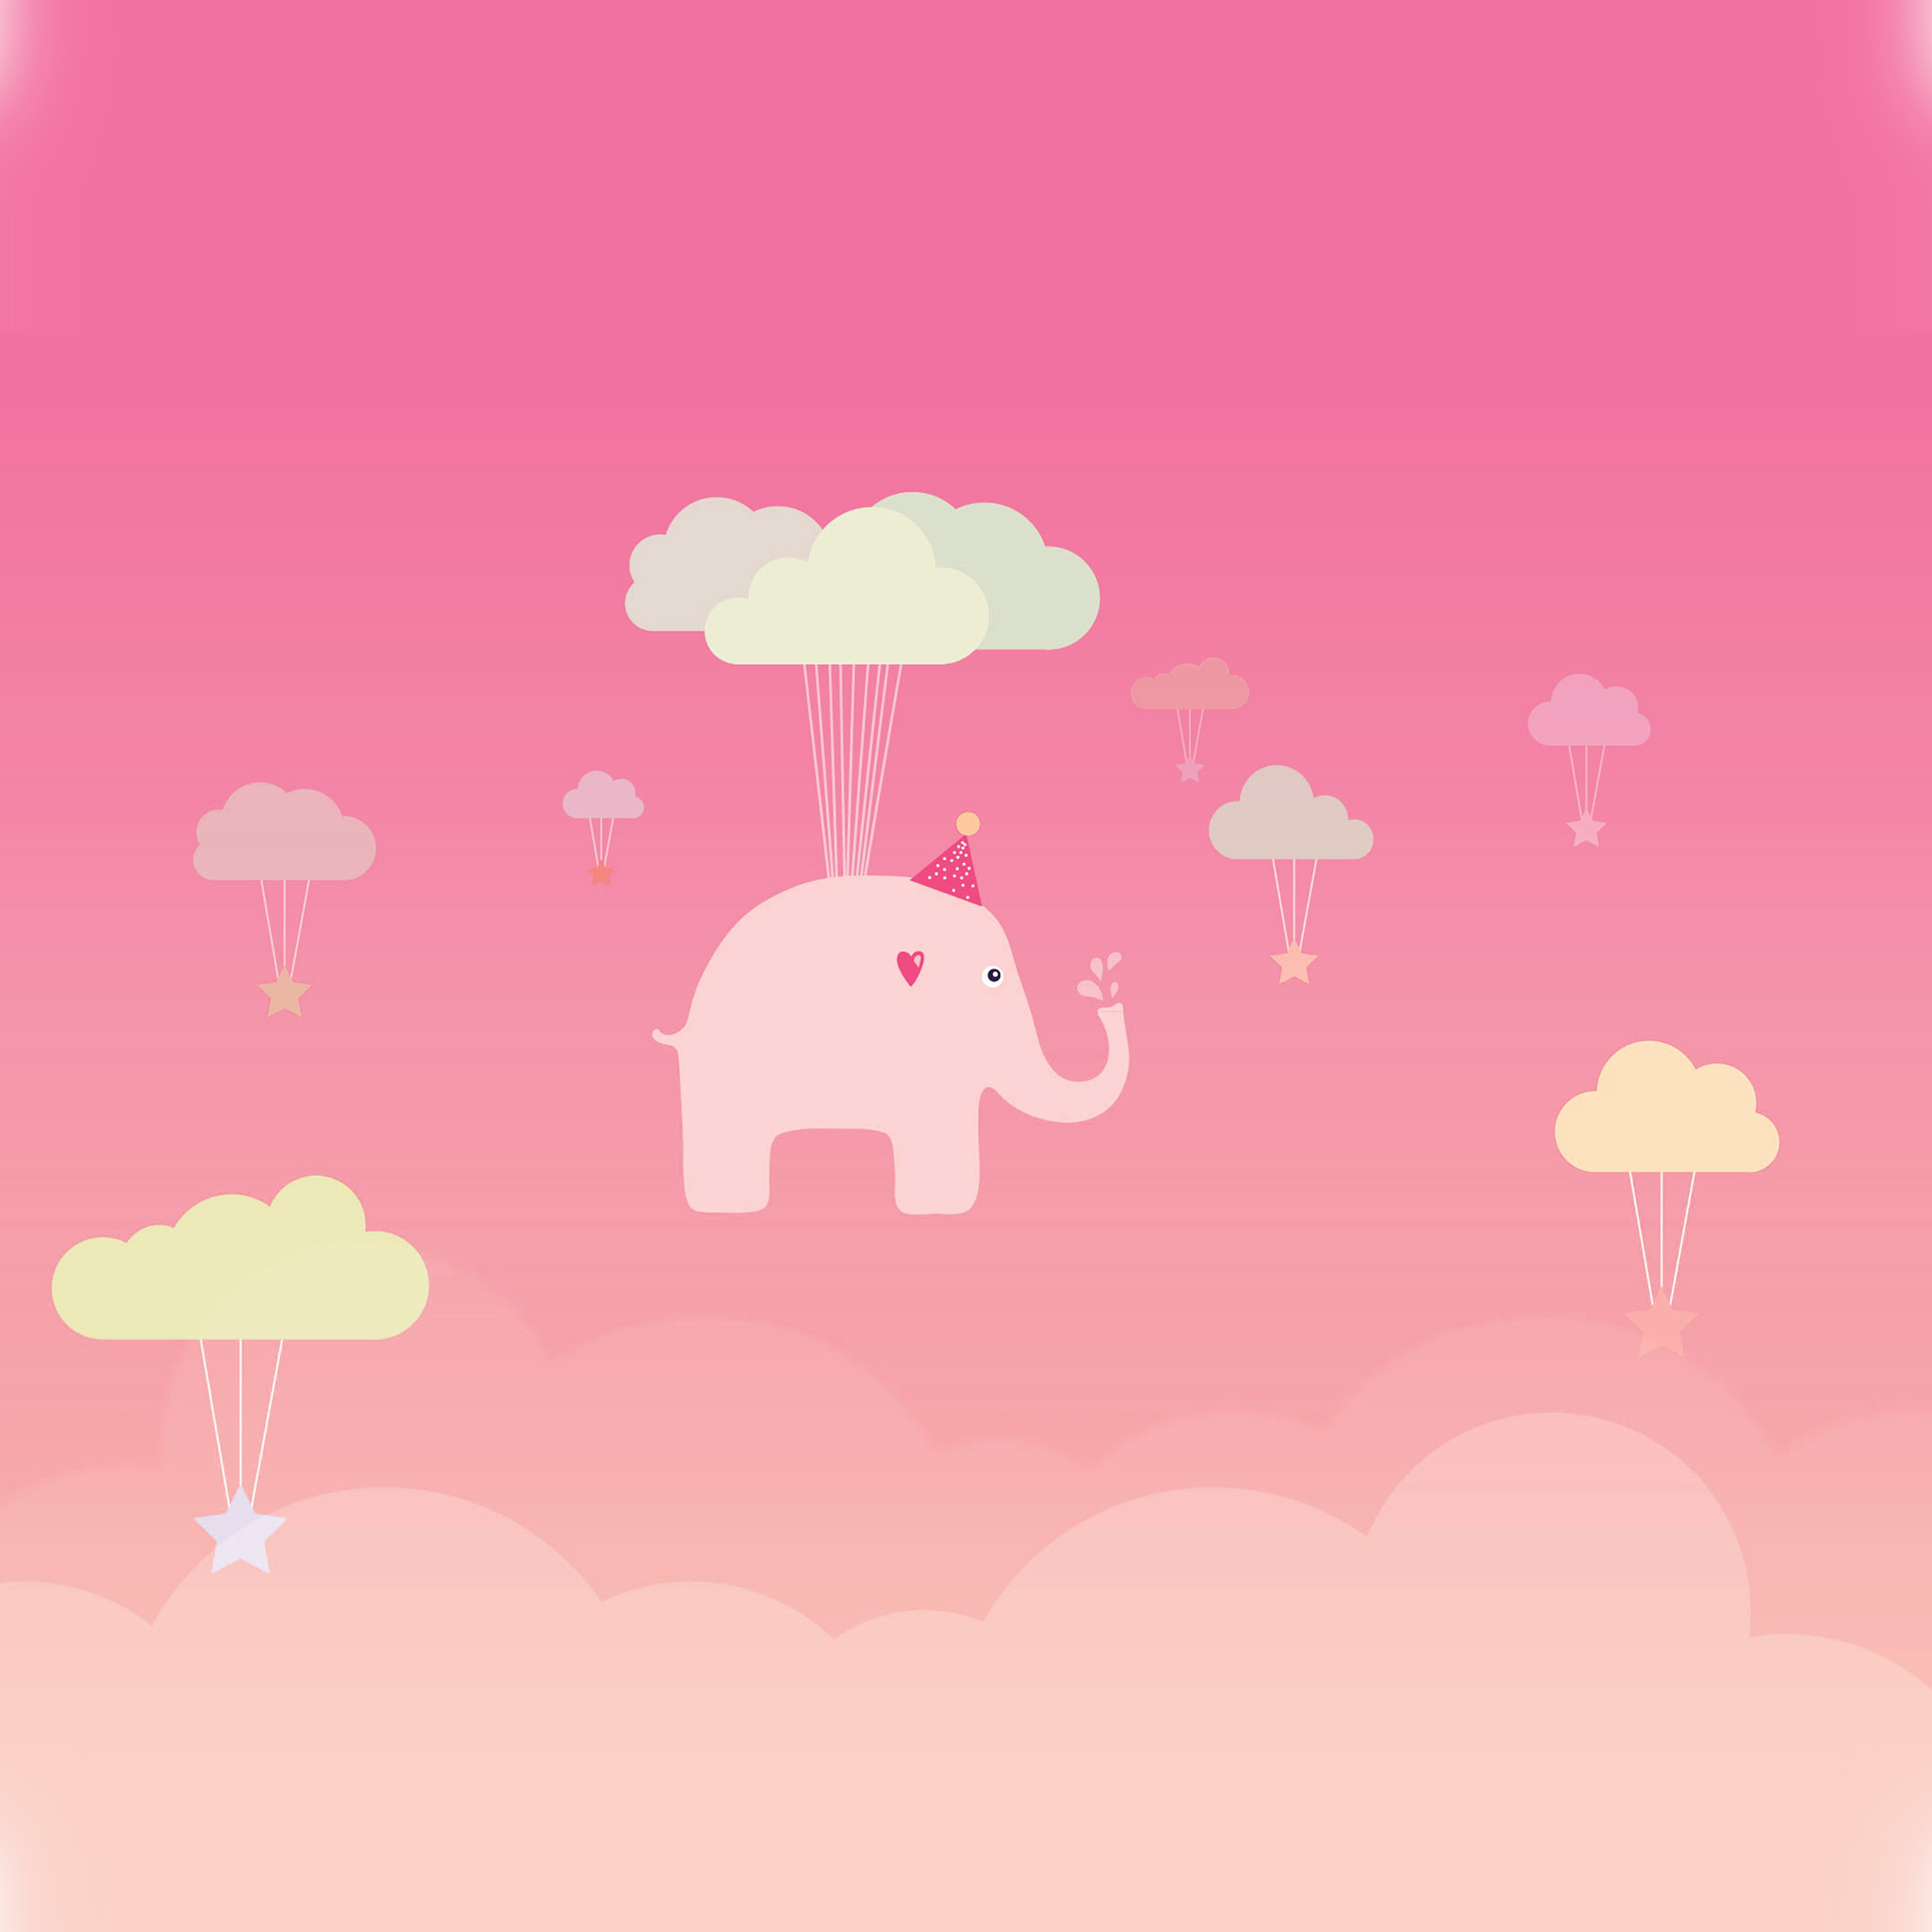 cute girly wallpapers for iphone 5c